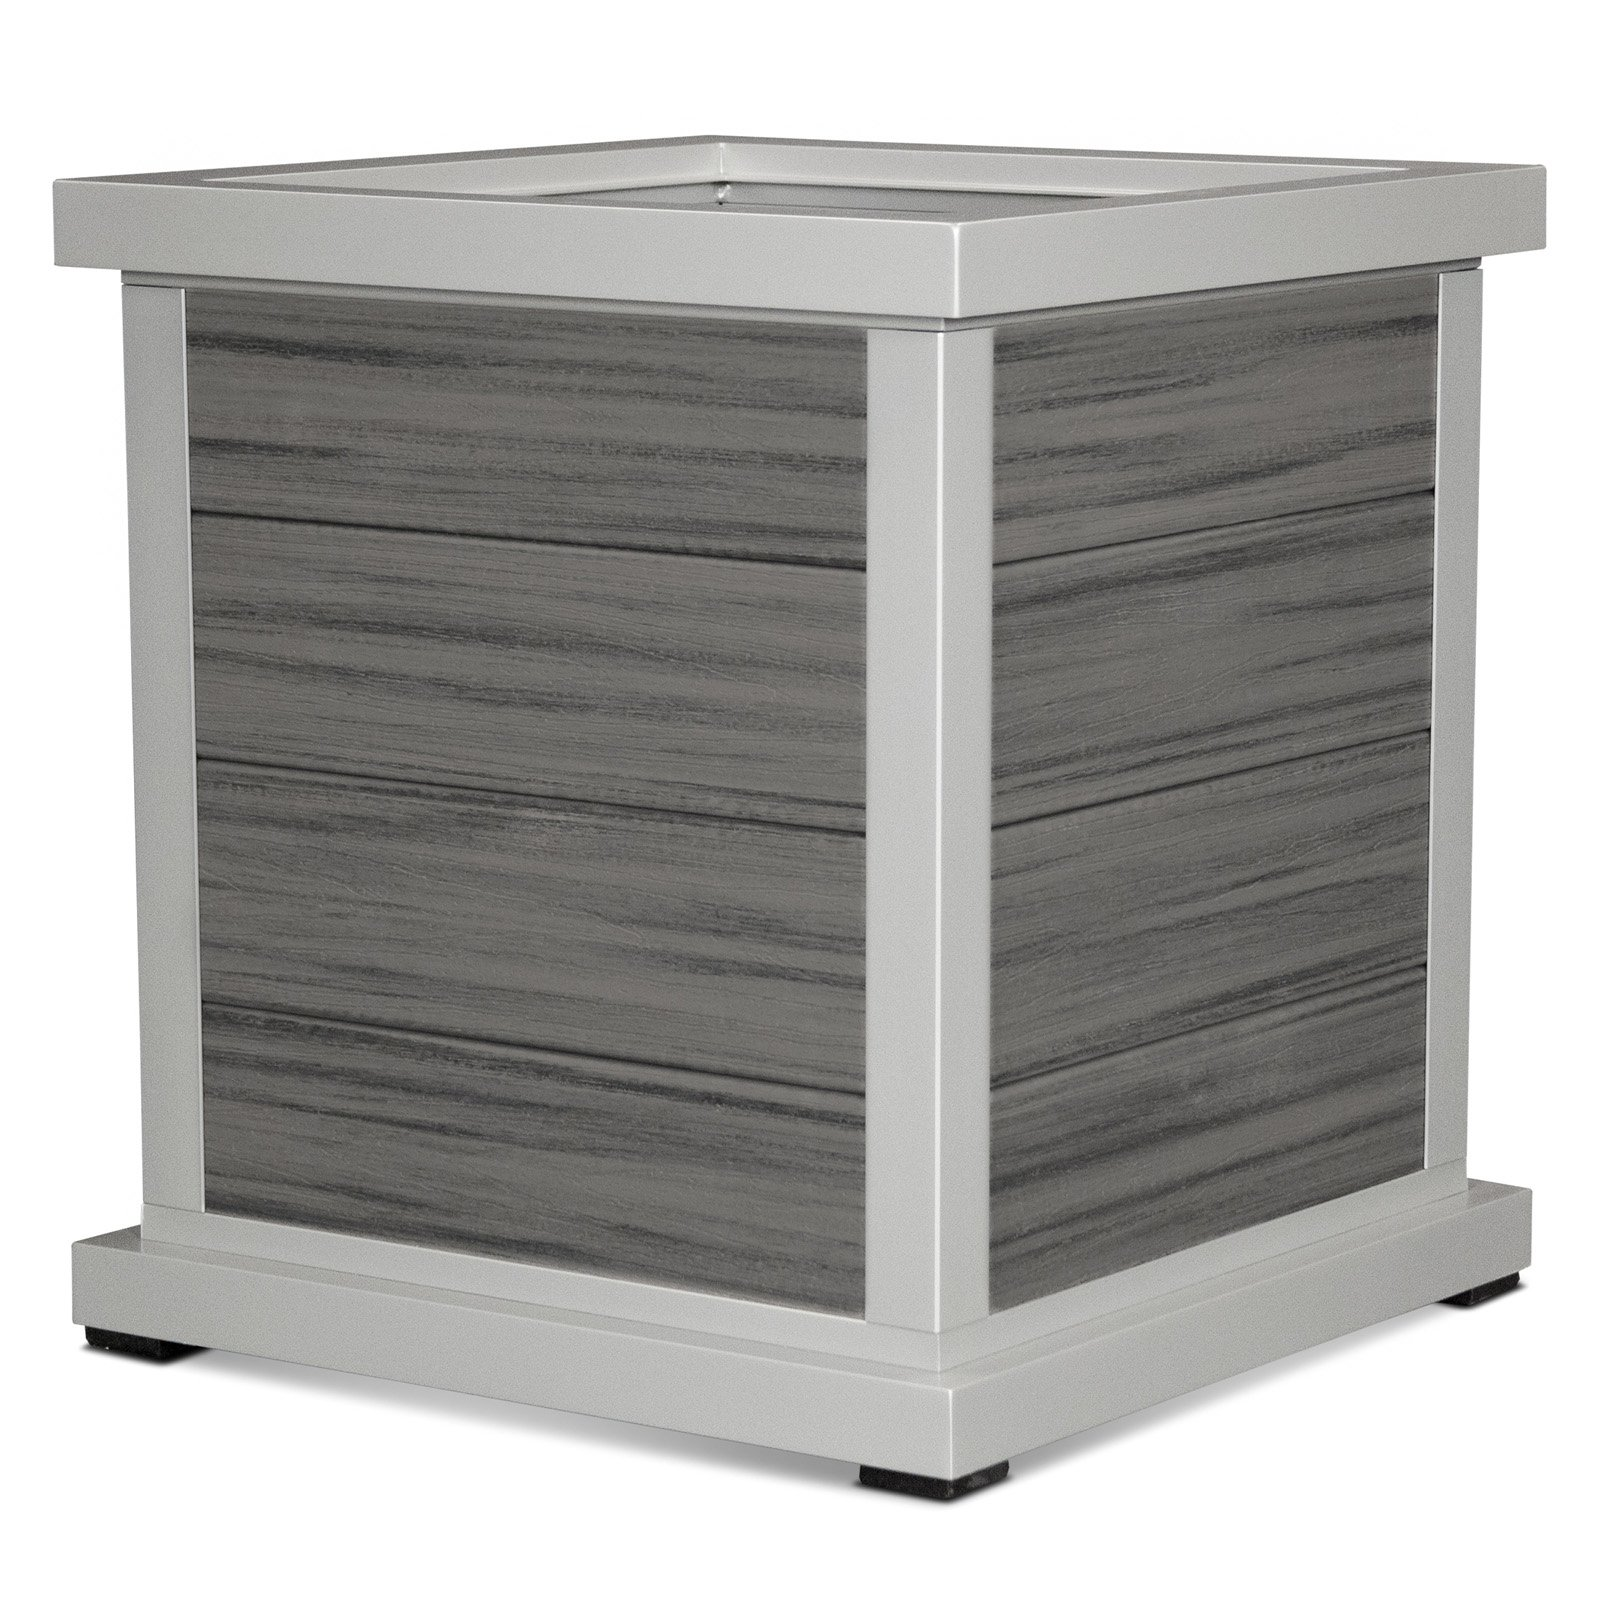 Trex Outdoor Furniture 24-in. 4-Board Cube Planter